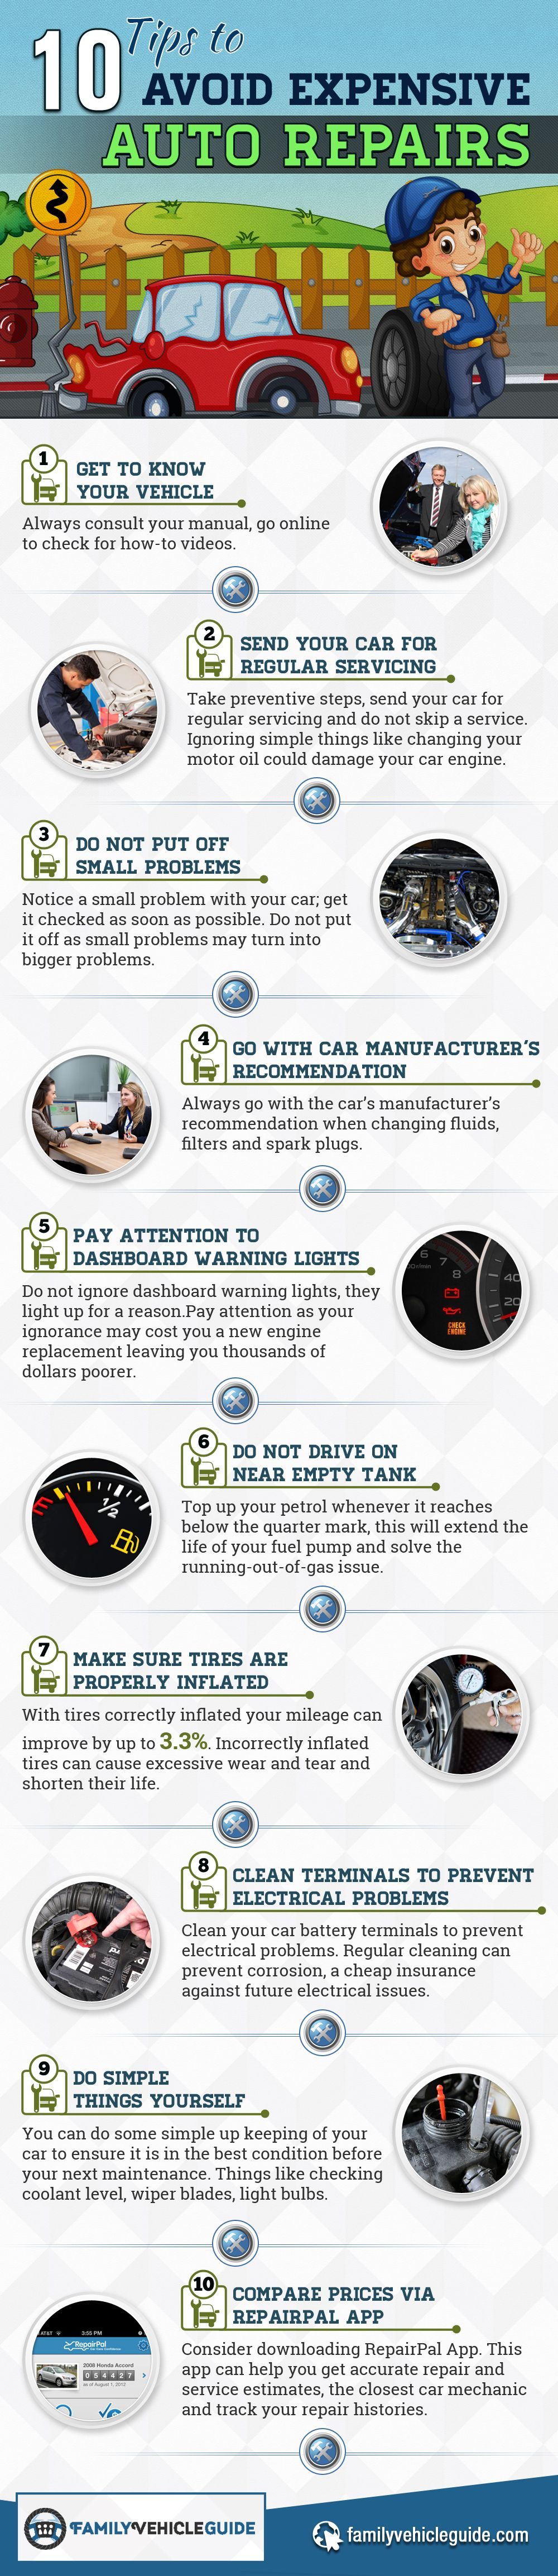 10 Tips to Avoid Expensive Auto Repairs